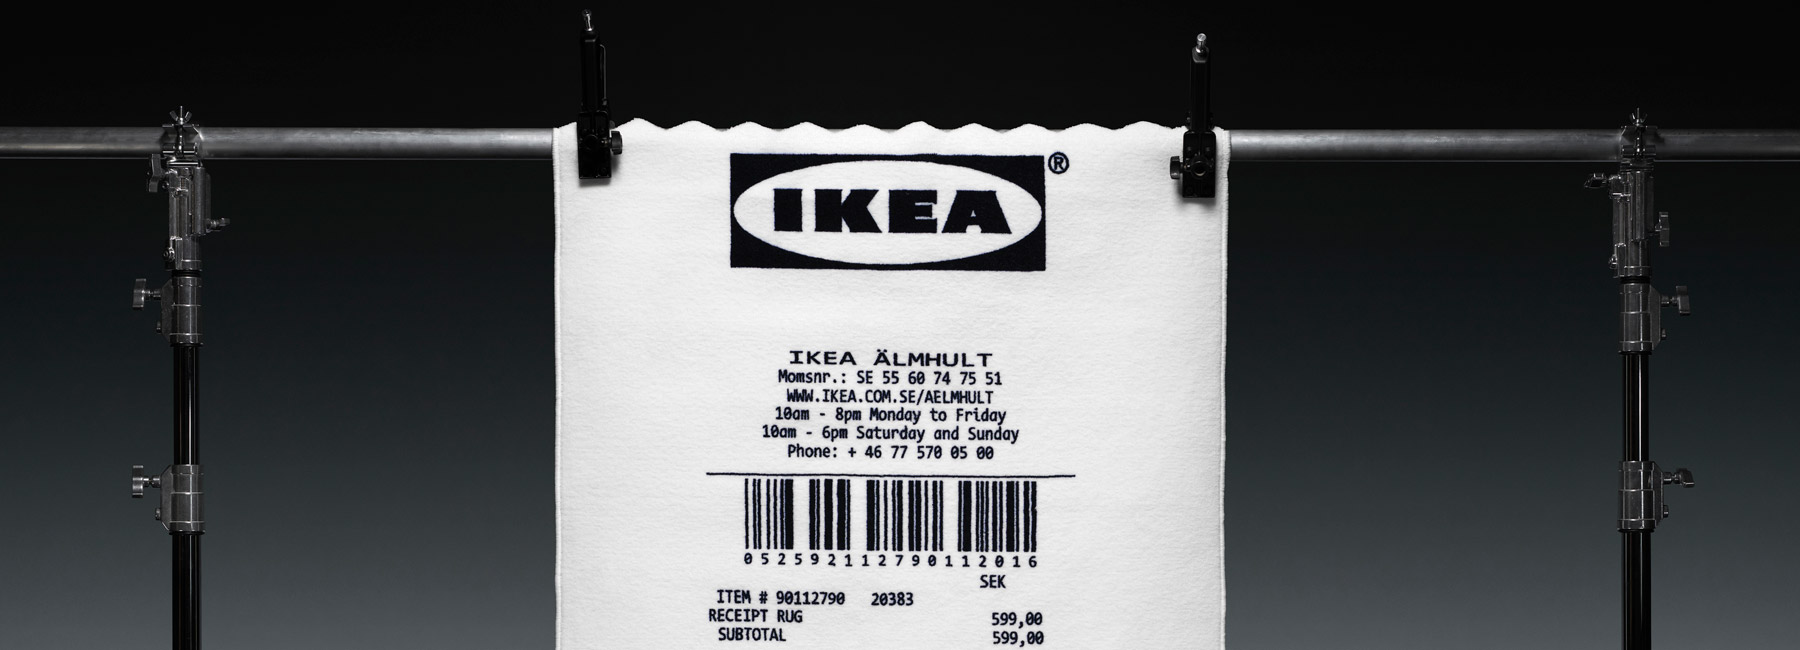 Virgil Ablohs Ikea Collection Will Include A Mona Lisa